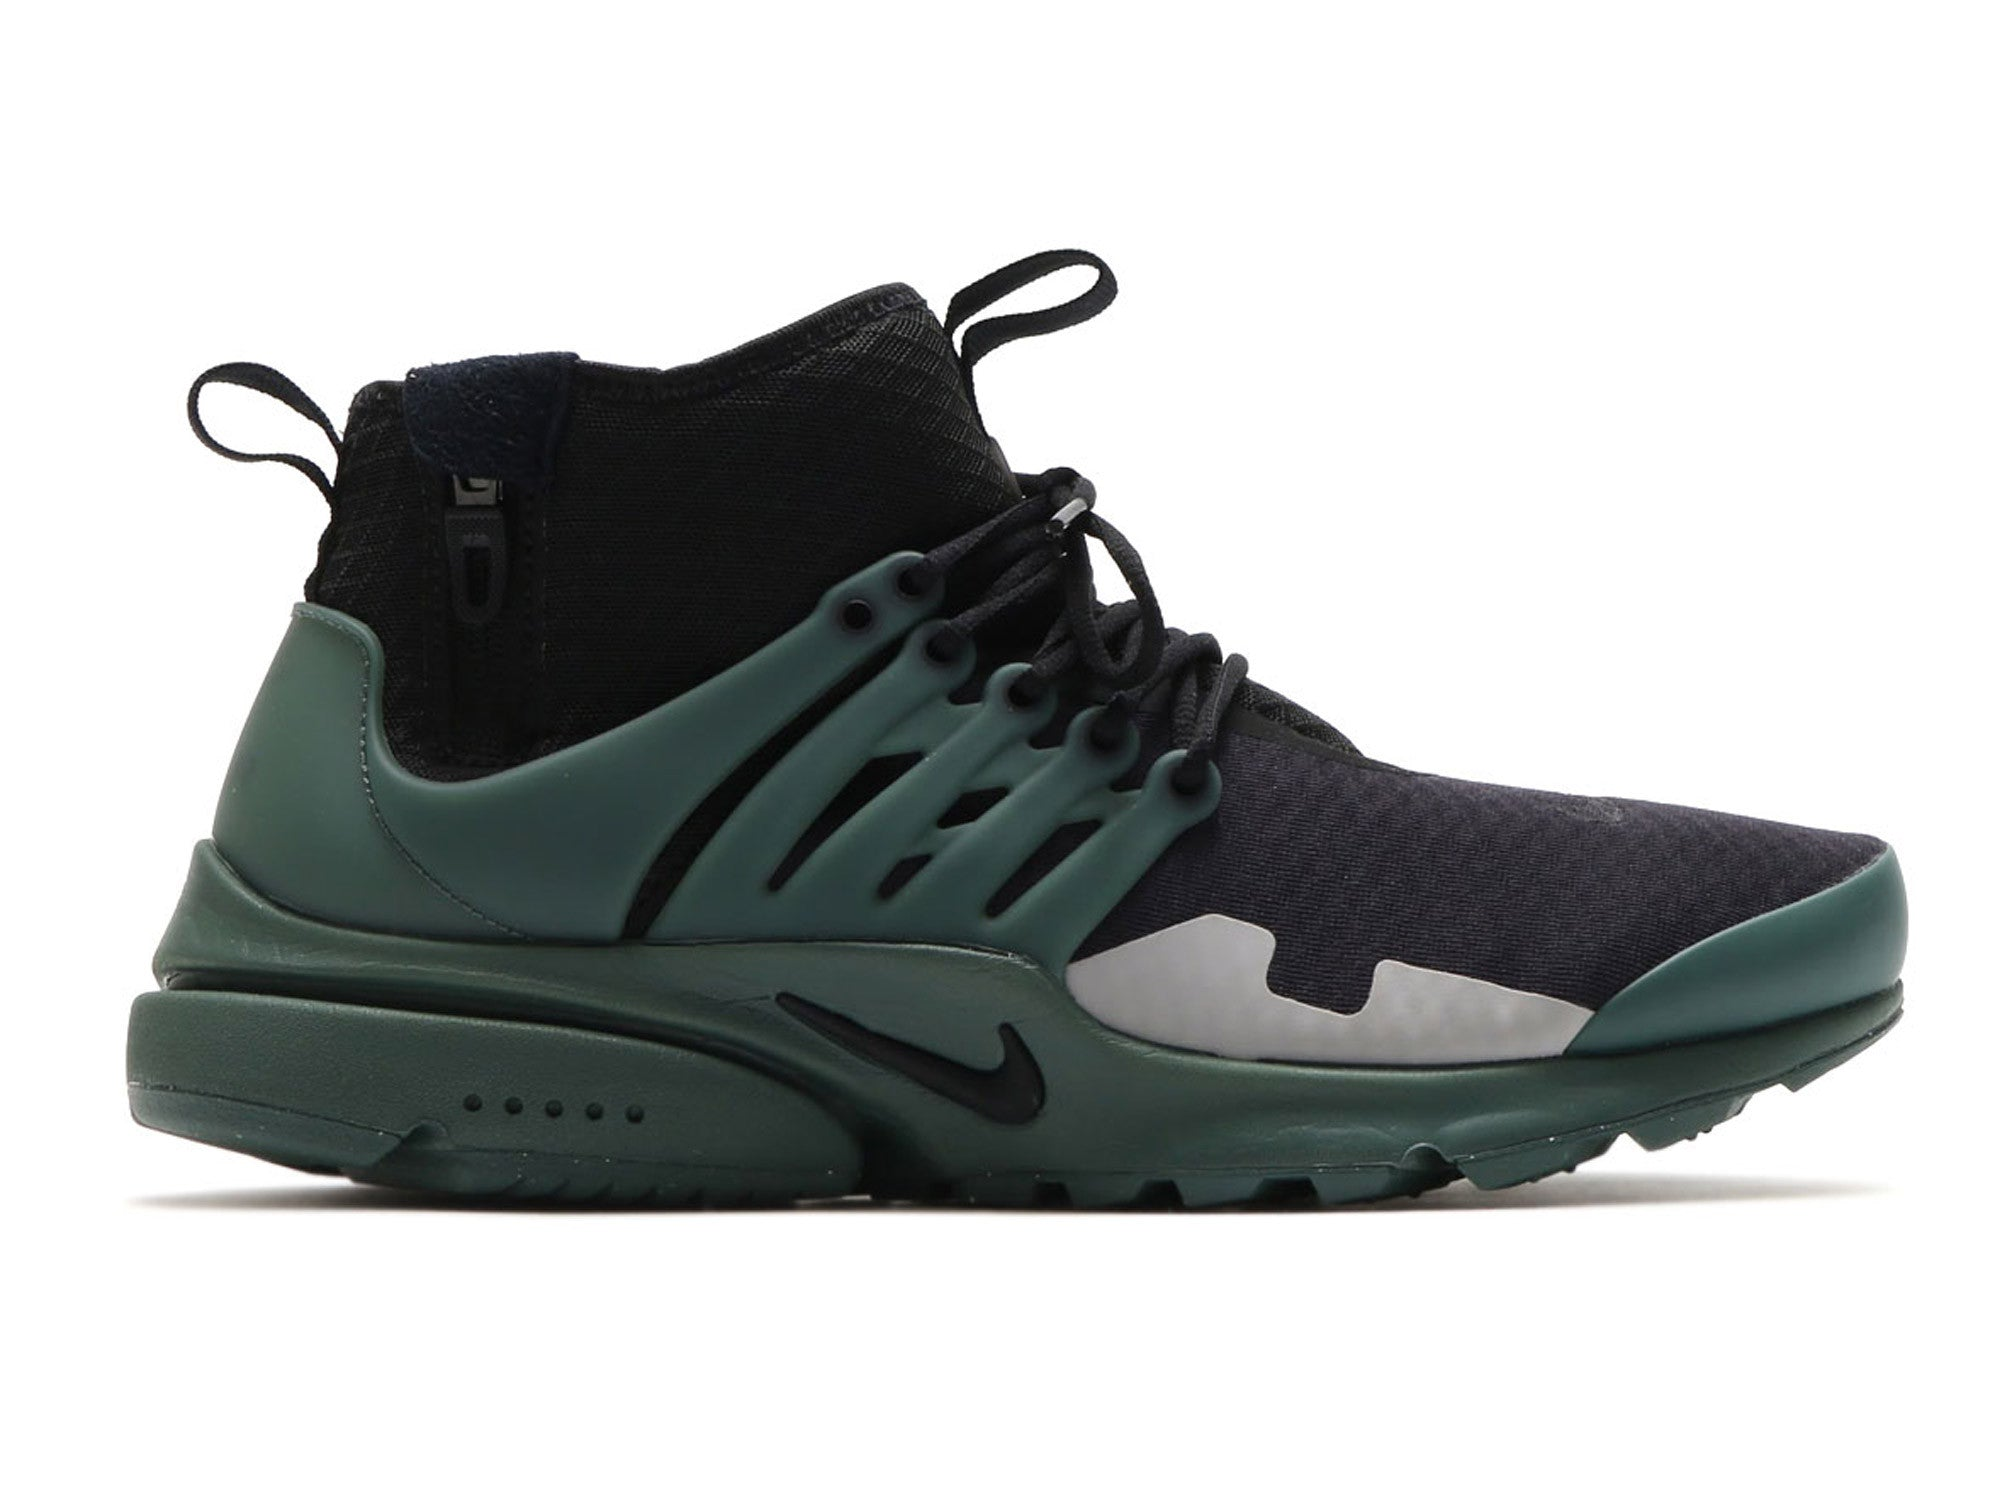 new concept 4a392 bcba0 The mid-top versions of the Nike Air Presto also includes zippers on the  ankle, front and back pull tabs.